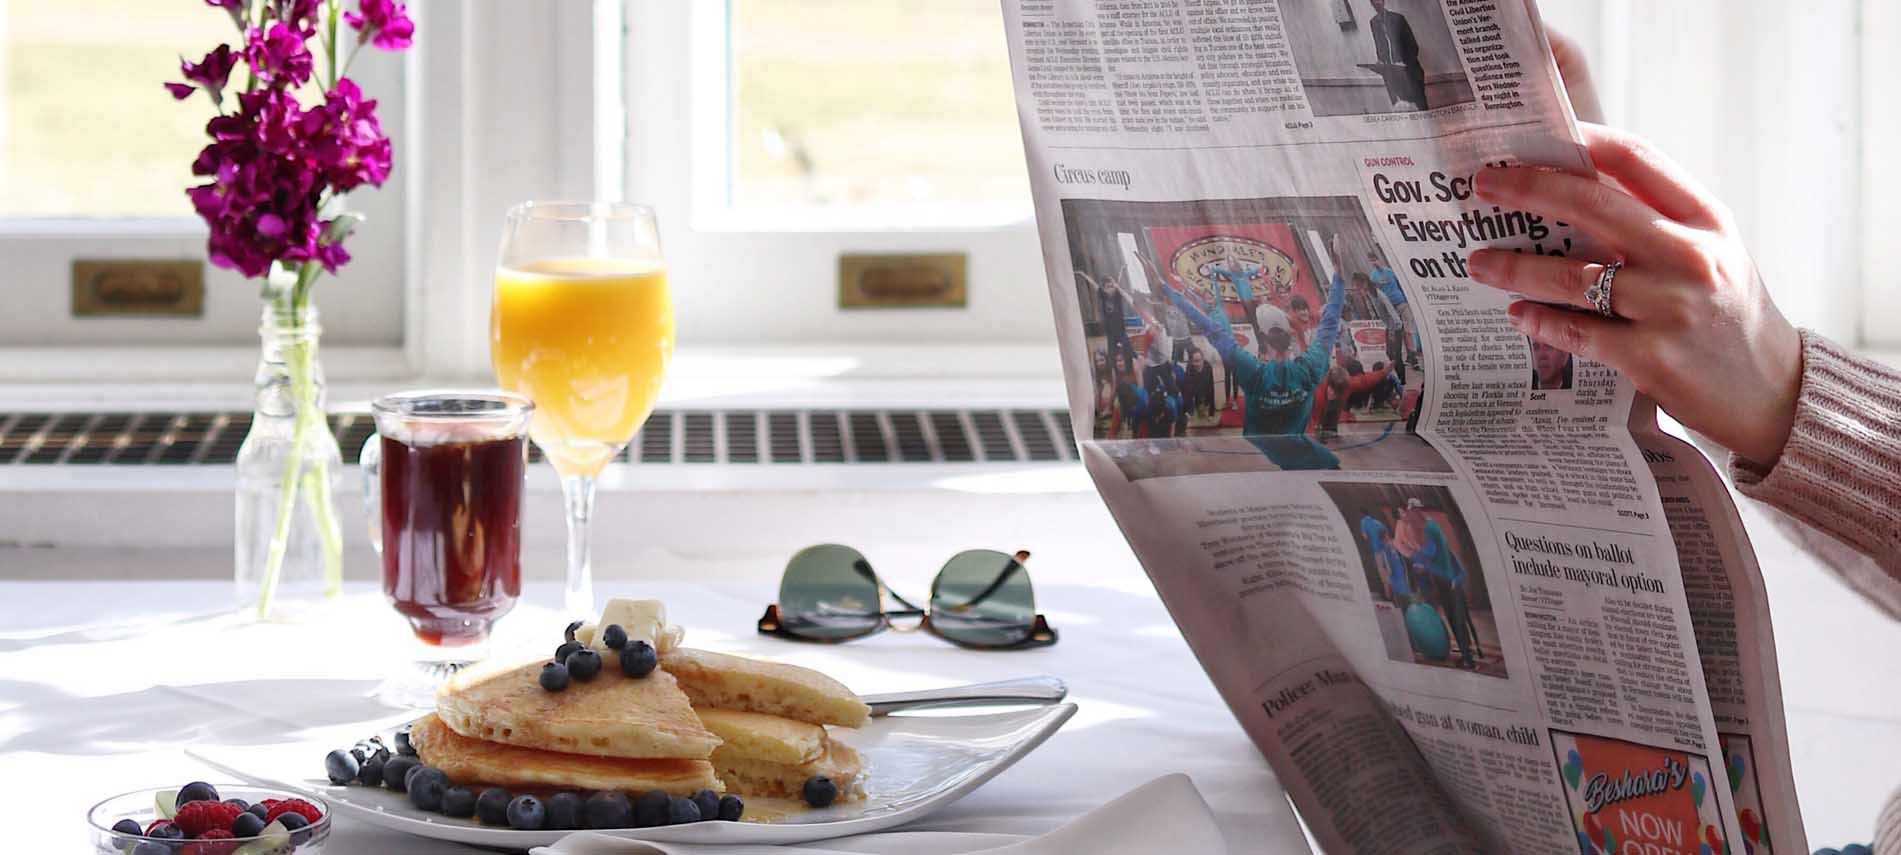 woman reading newspaper in front of plate of blueberry pancakes